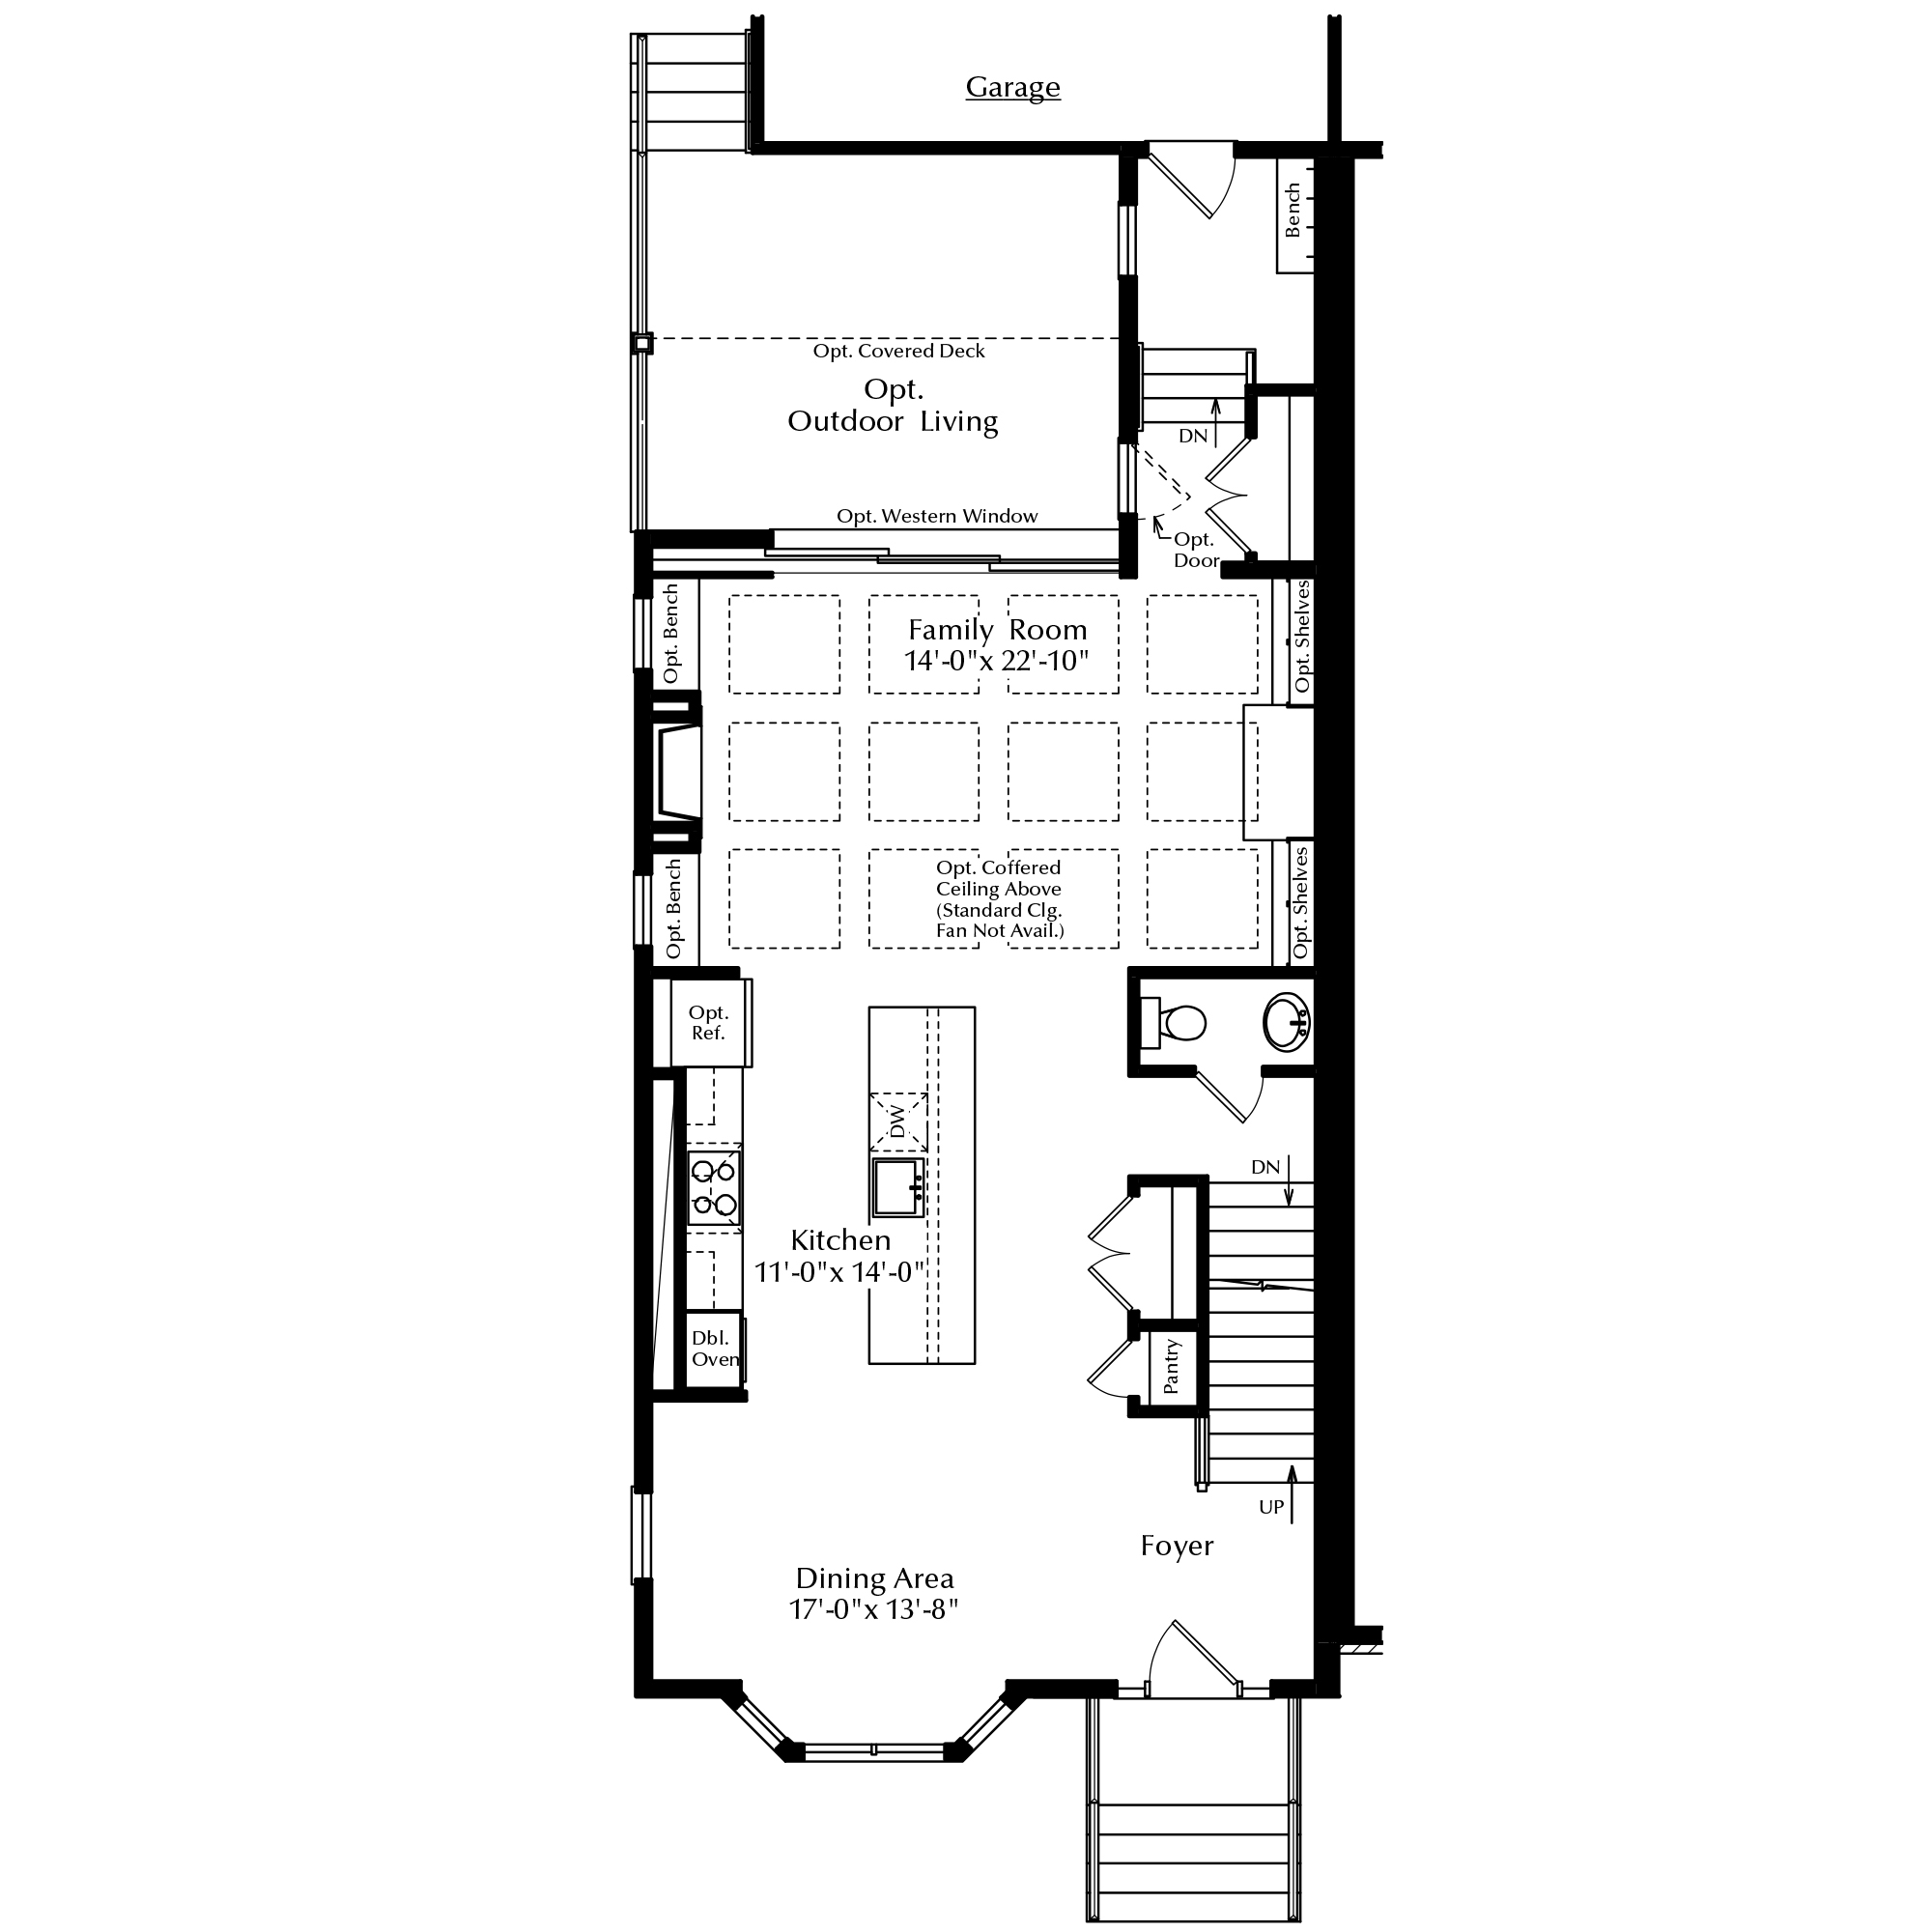 First Floor with Attached Garage and Options